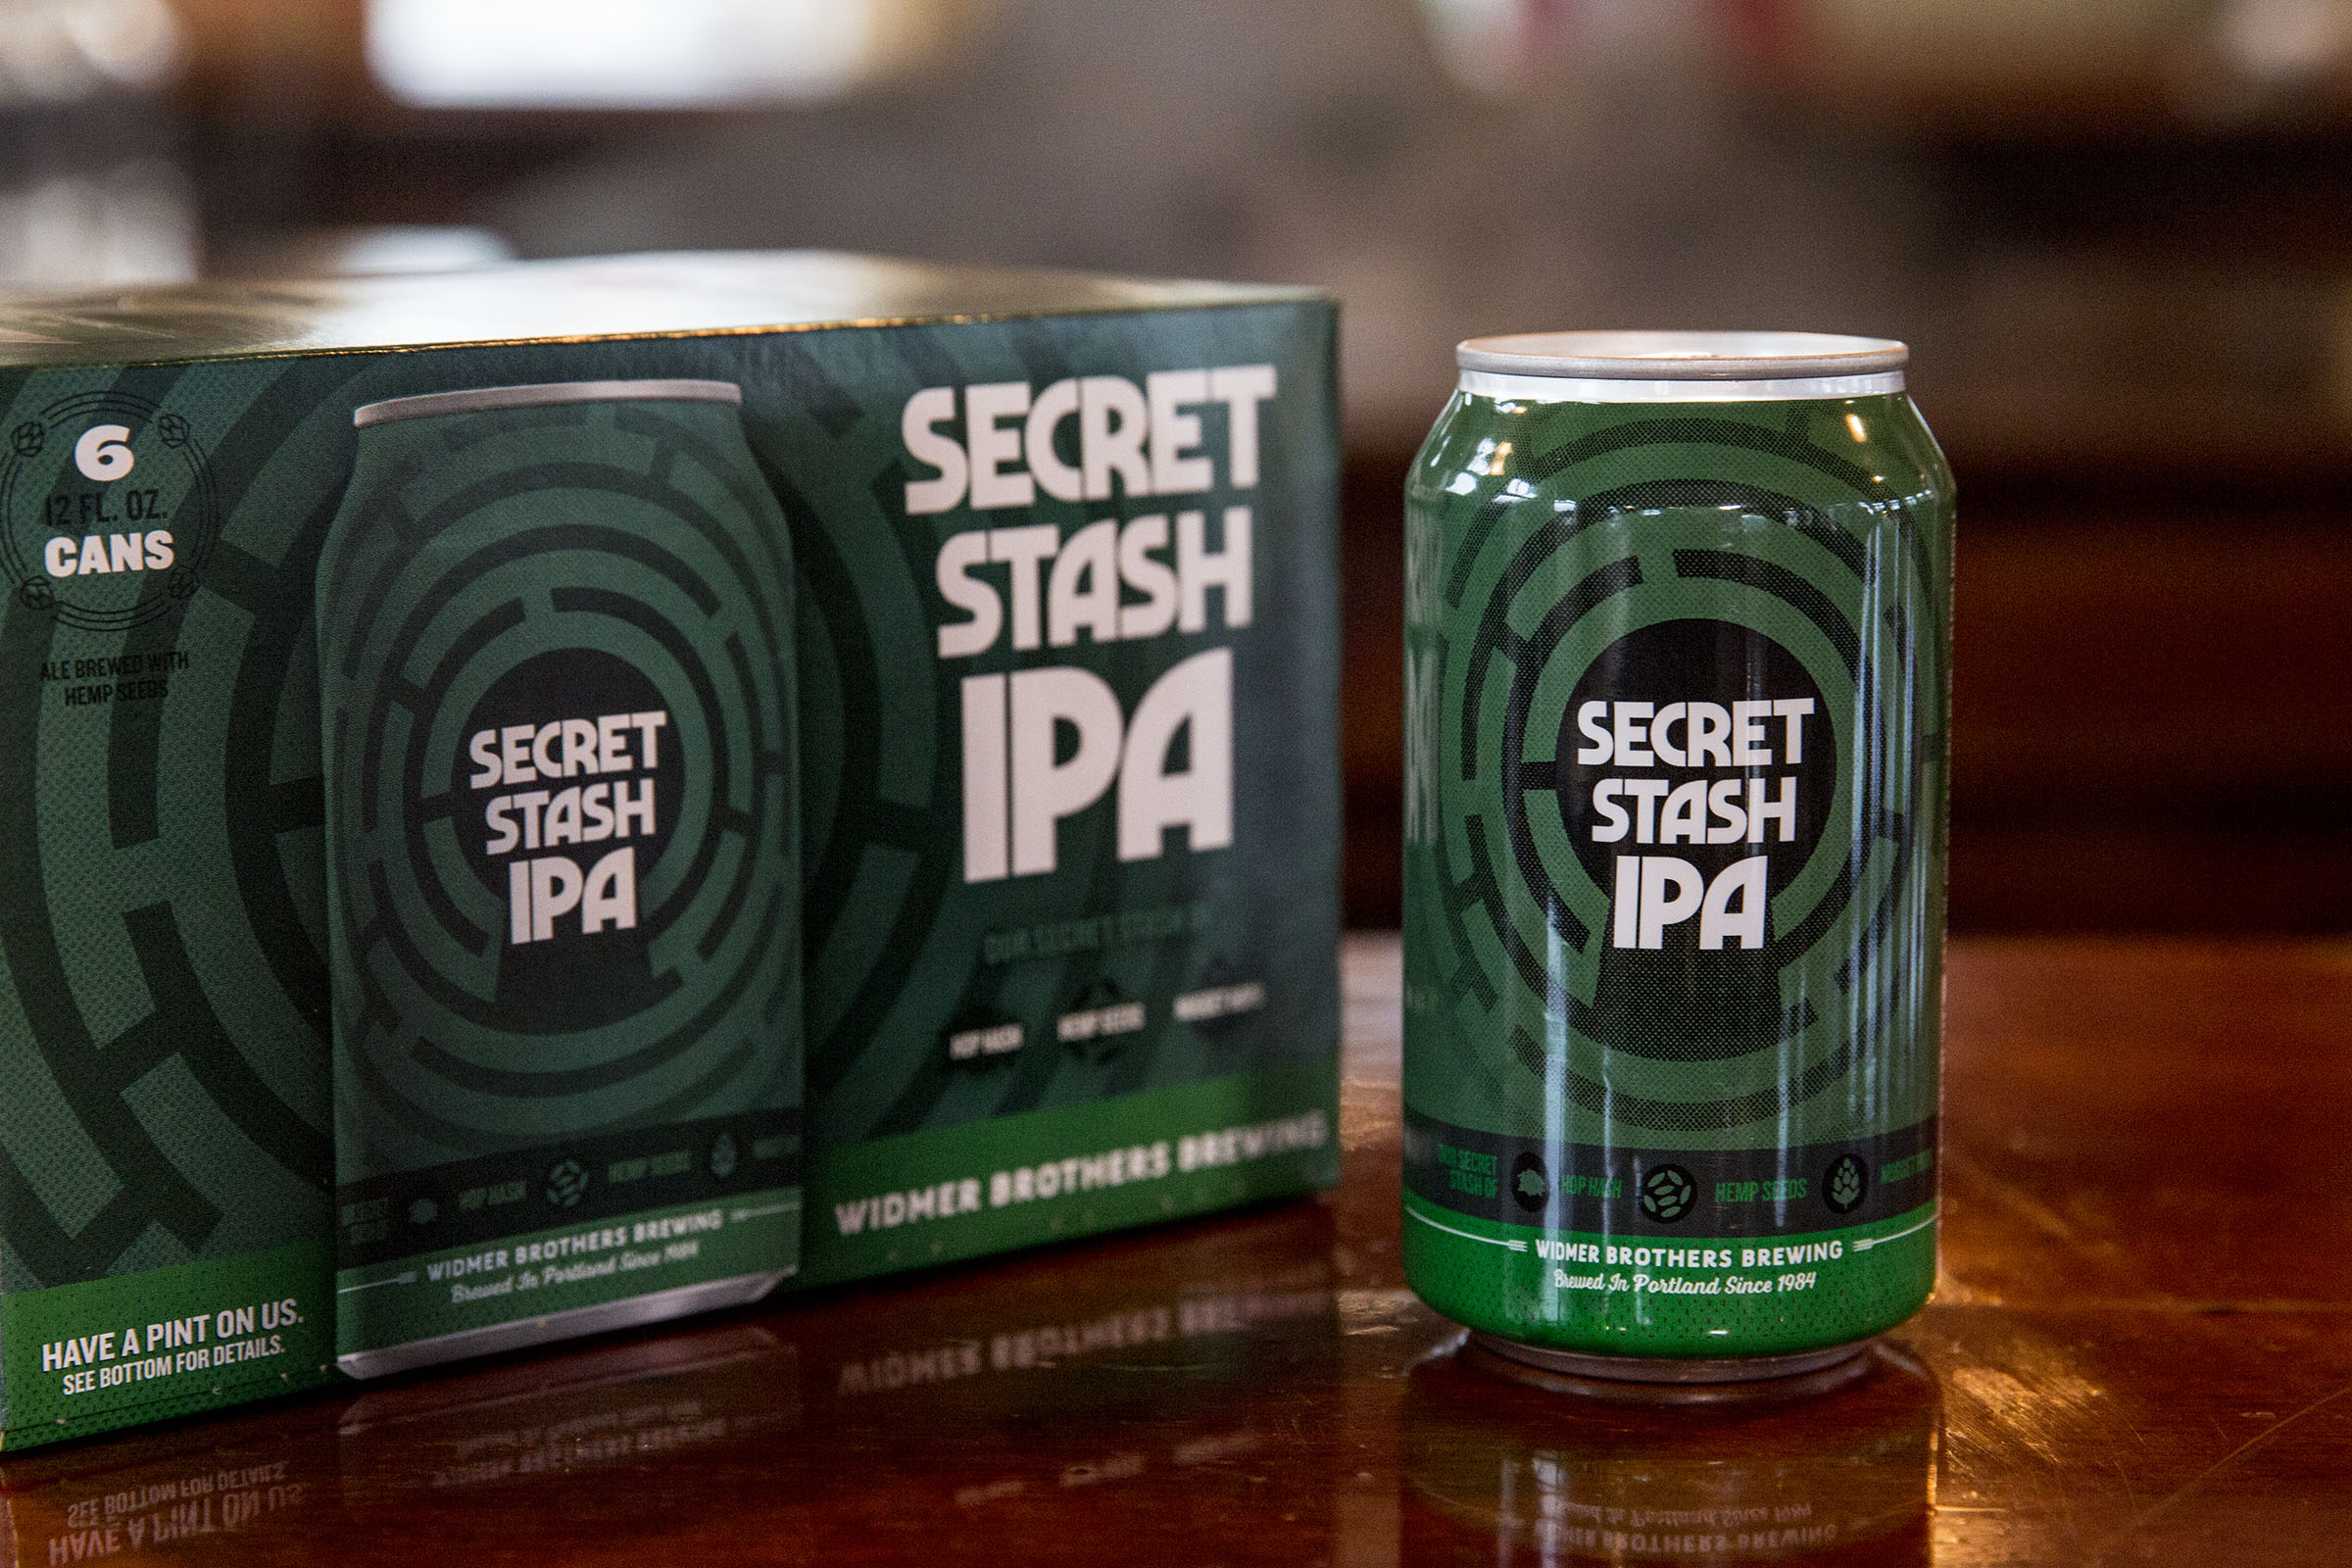 image of Secret Stash IPA courtesy of Widmer Brothers Brewing